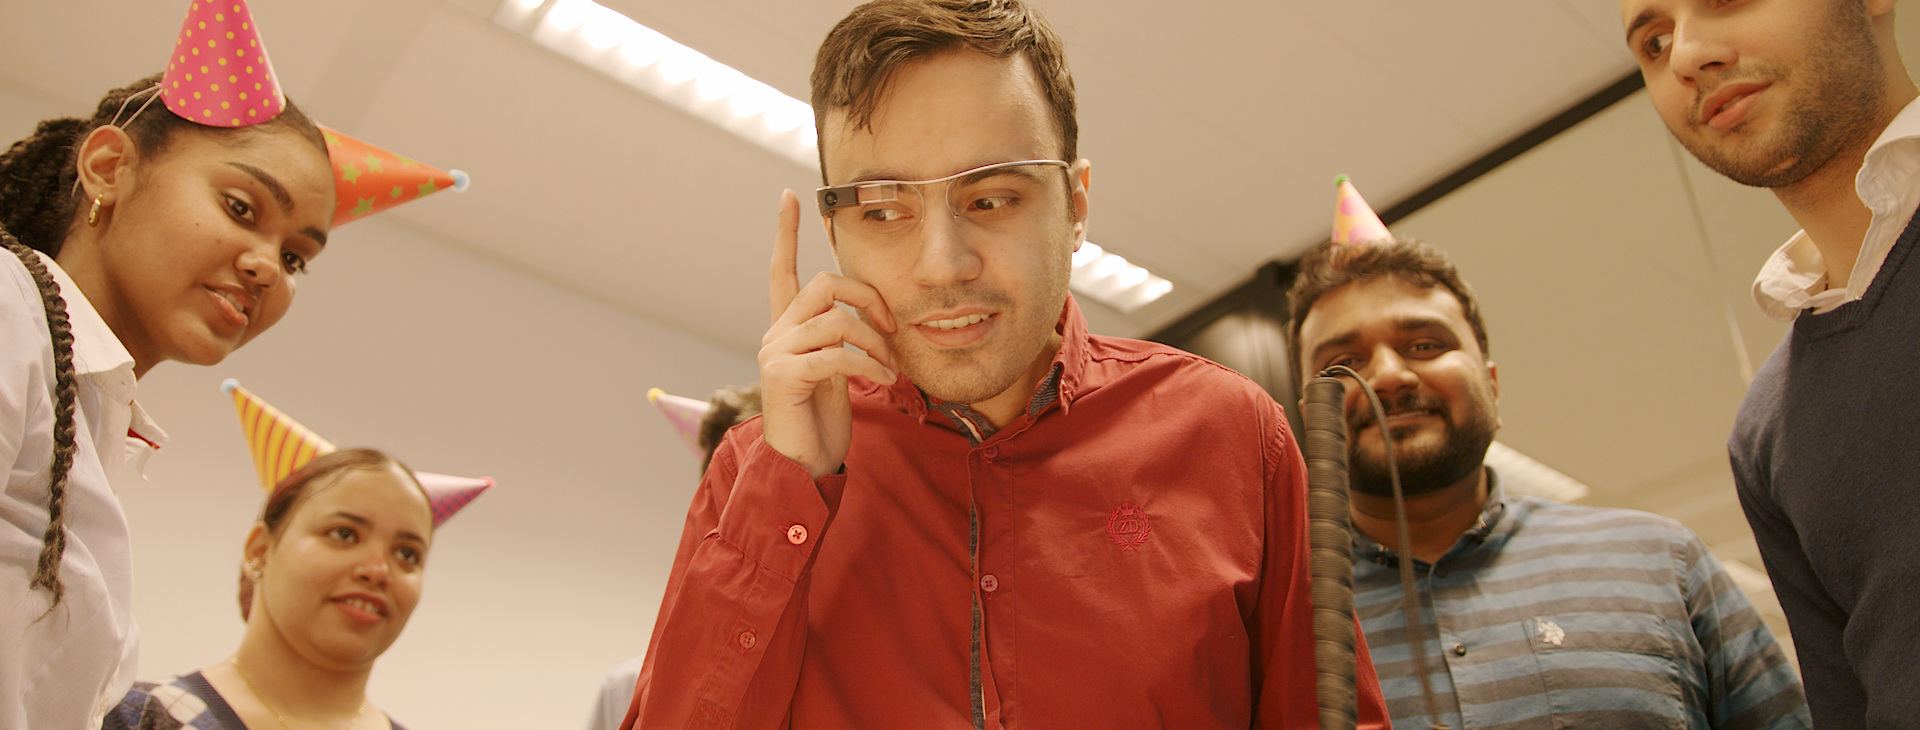 Person using Envision Glasses to describe a scene